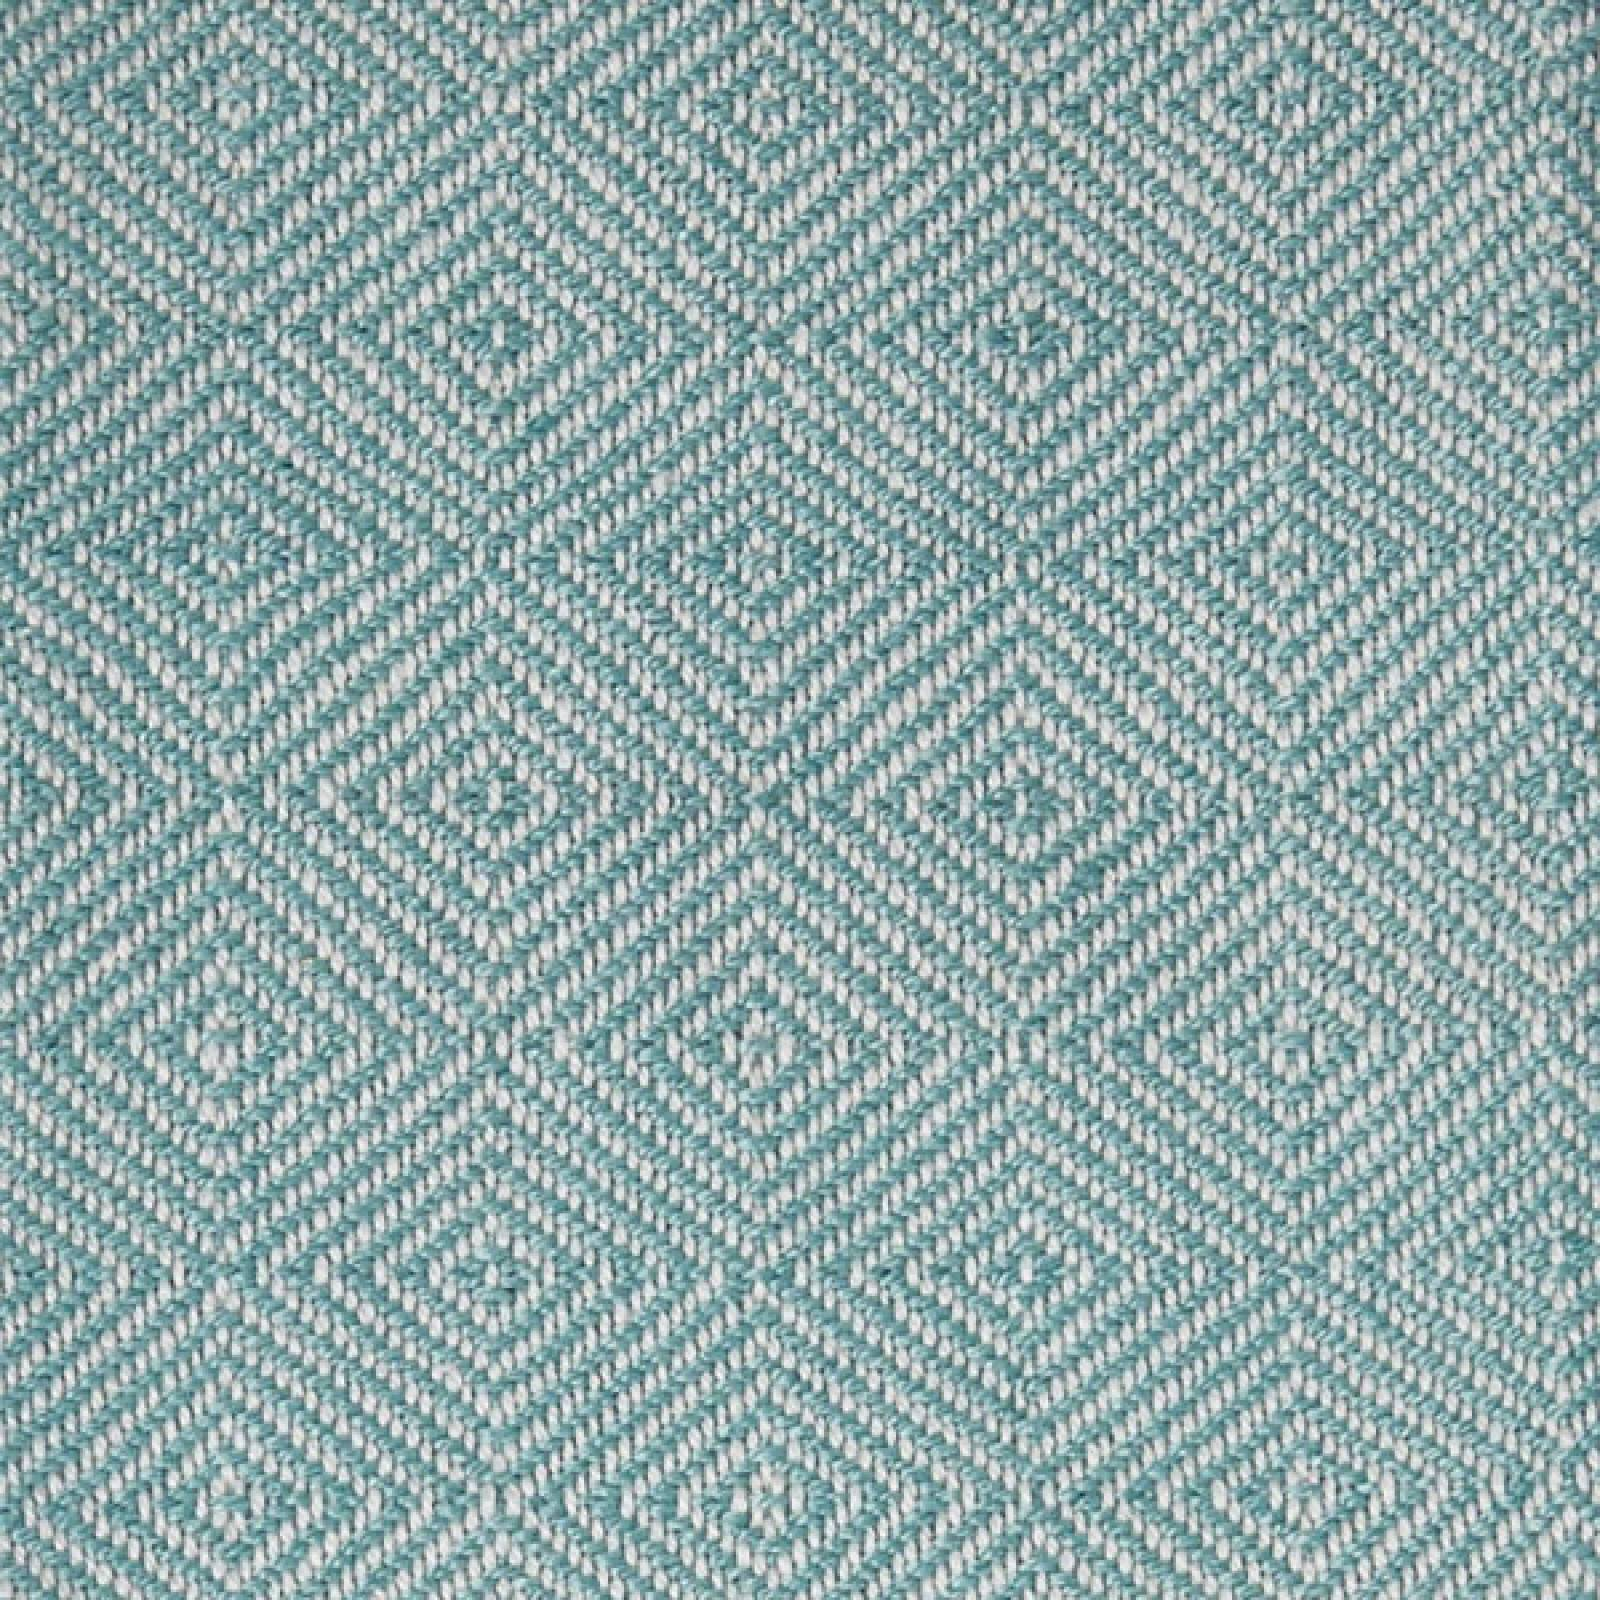 Teal Azure Diamond Blanket From Recycled Bottles thumbnails